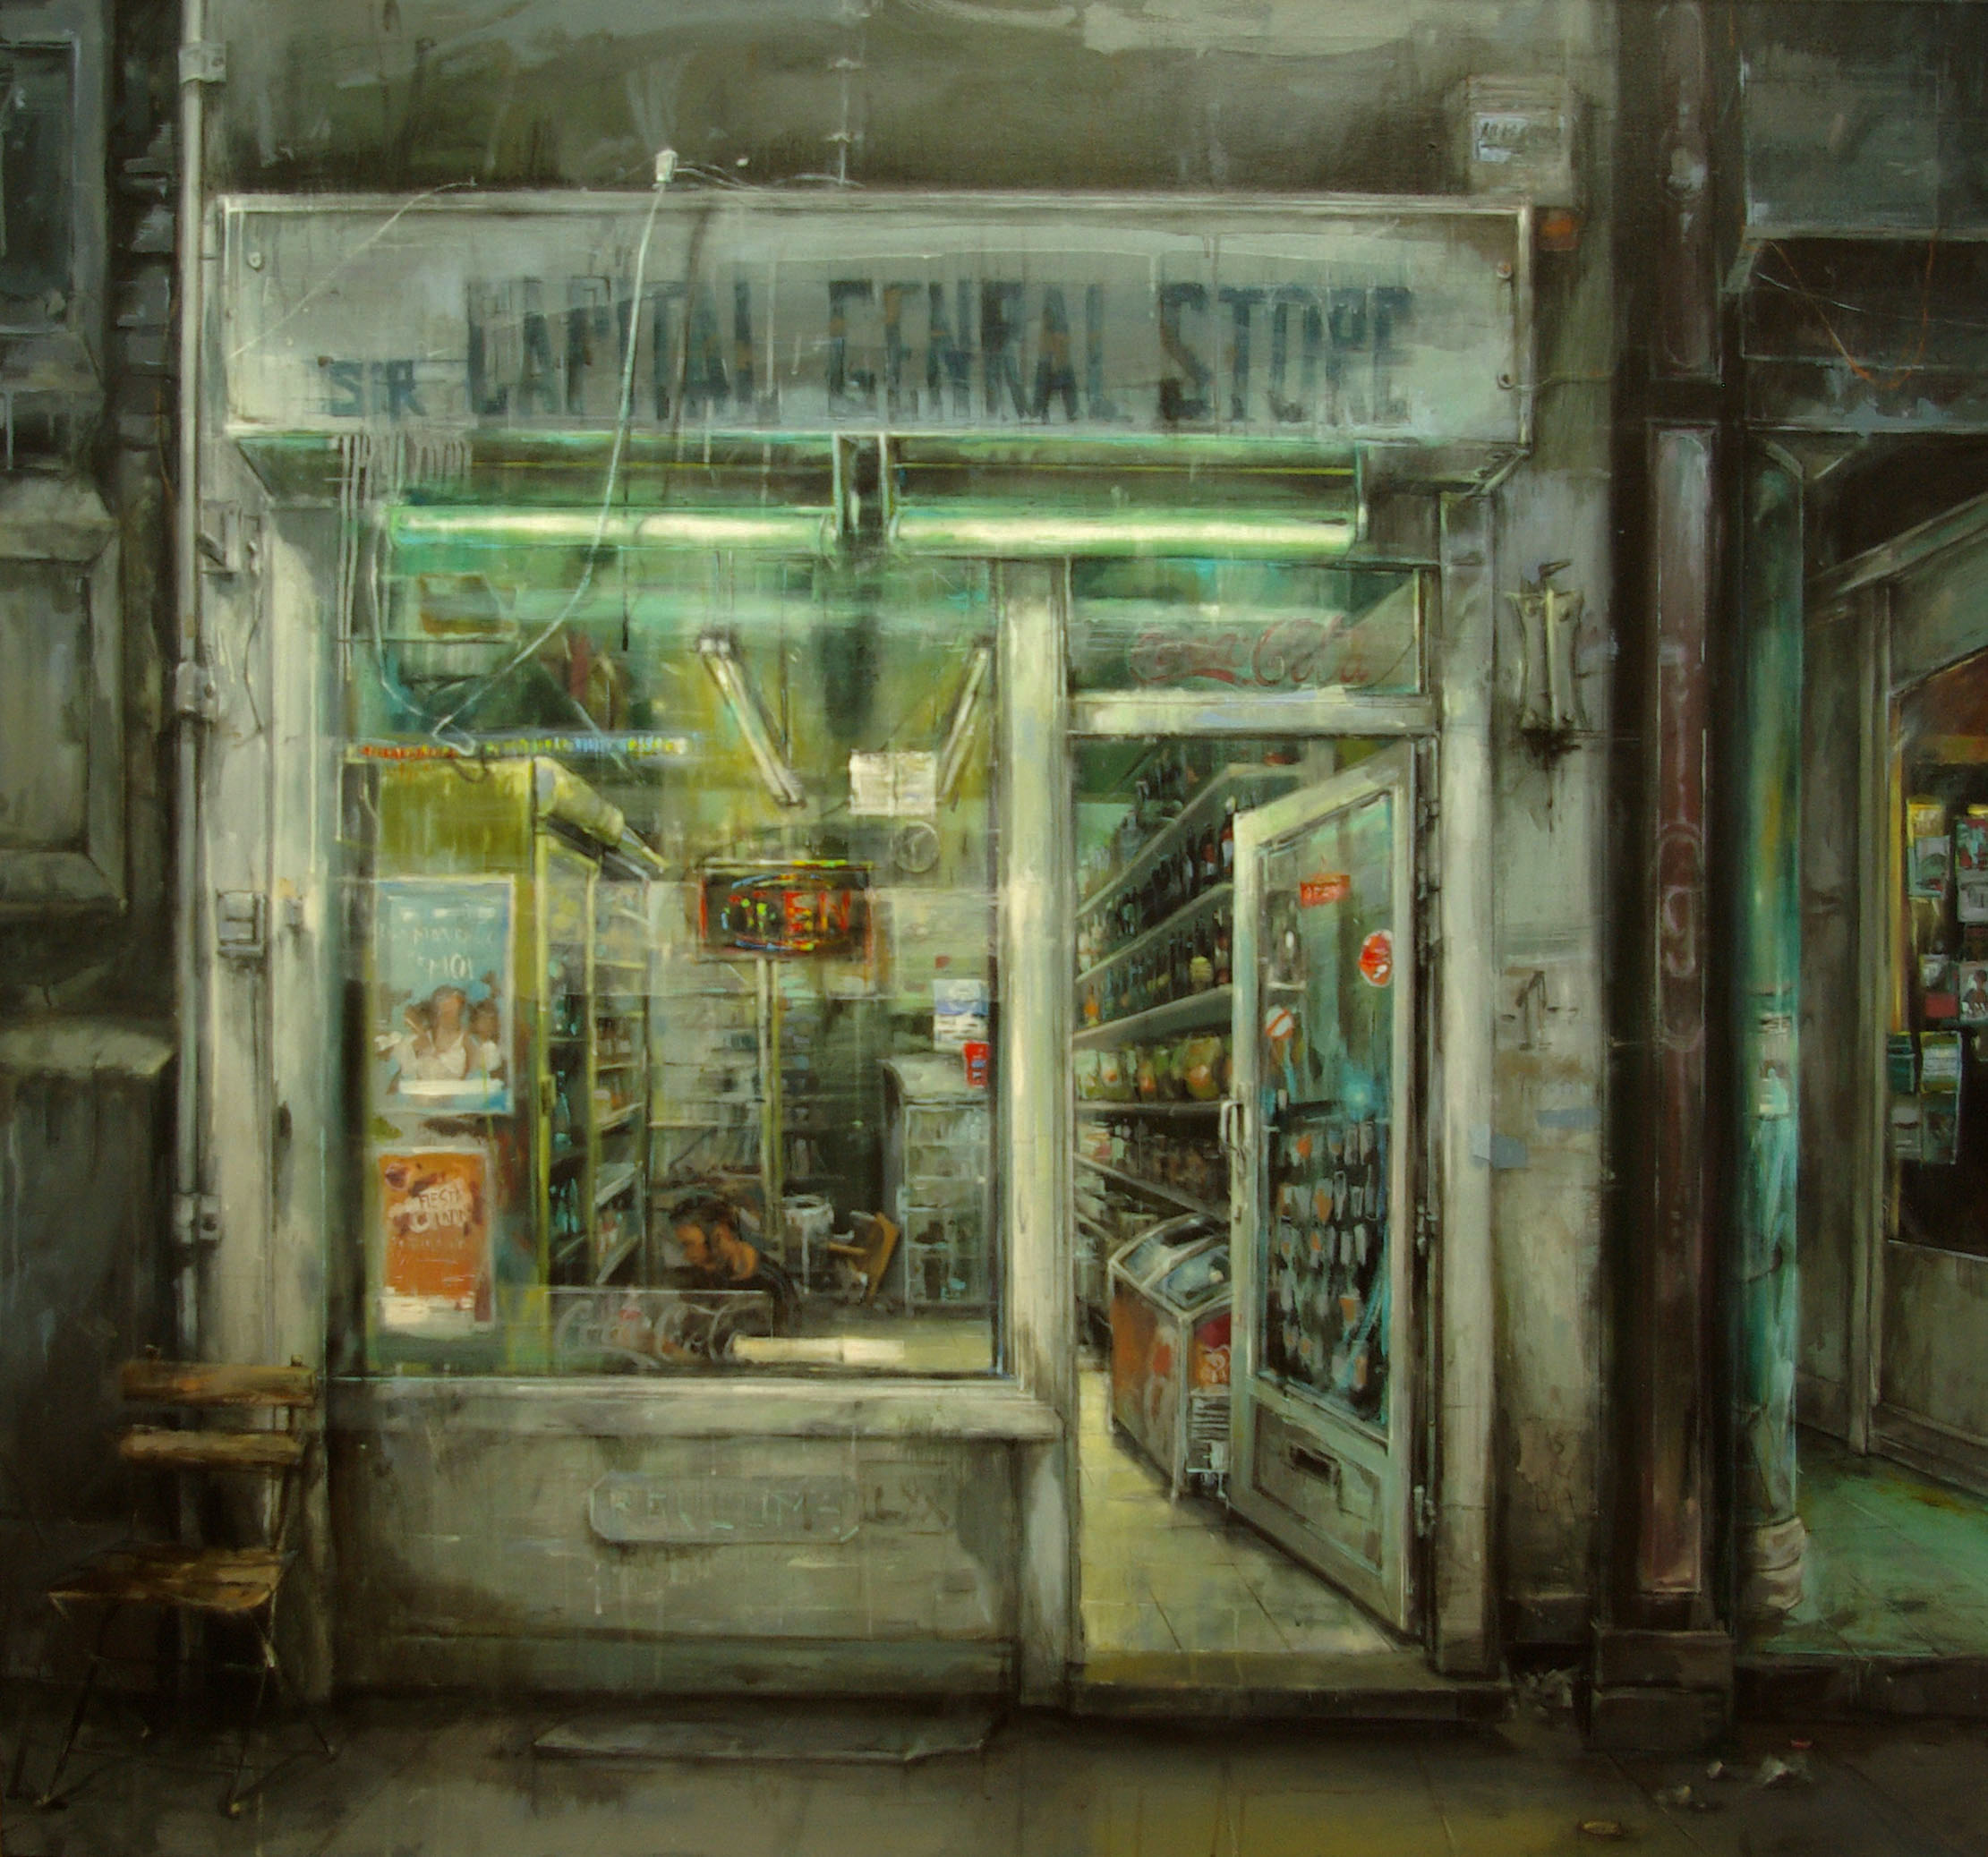 Leticia Gaspar. Sir Capital Genral Store. Técnica mixta, 150 x 140 cm